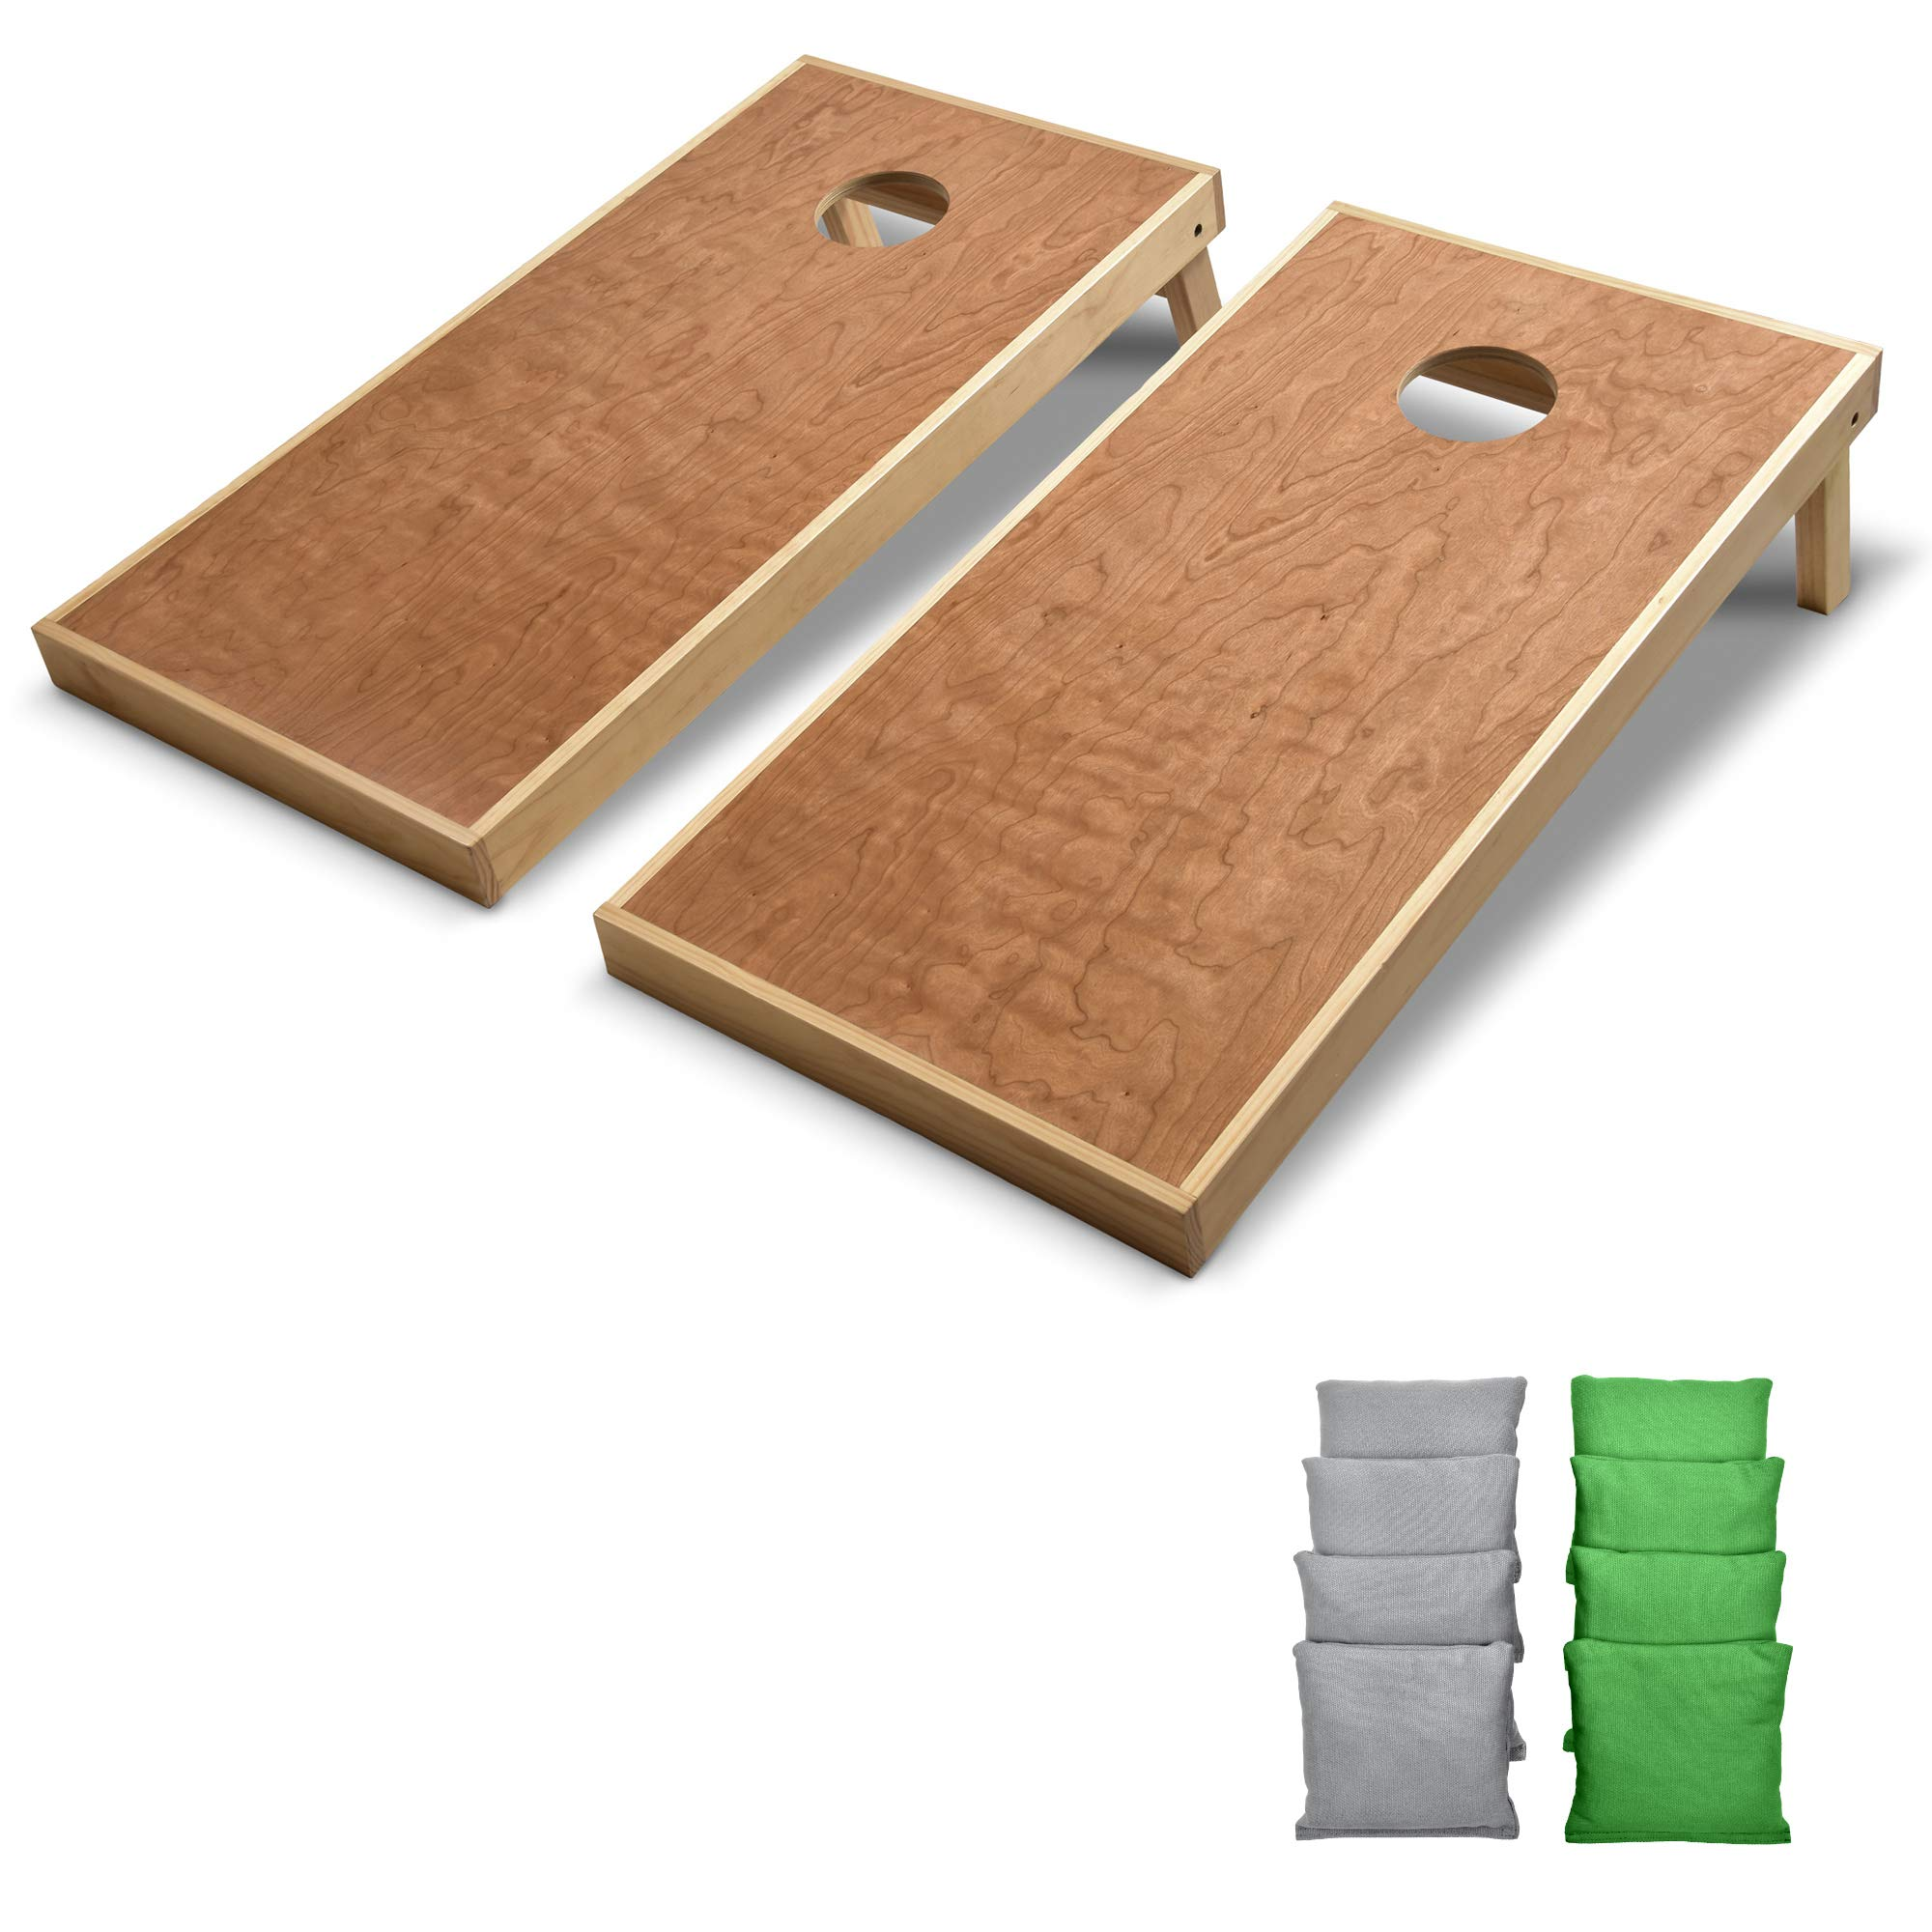 GoSports 4' x 2' Commercial Grade Cornhole Boards Set | Includes Bean Bags (Choose Your Colors) Over 100 Color Combinations by GoSports